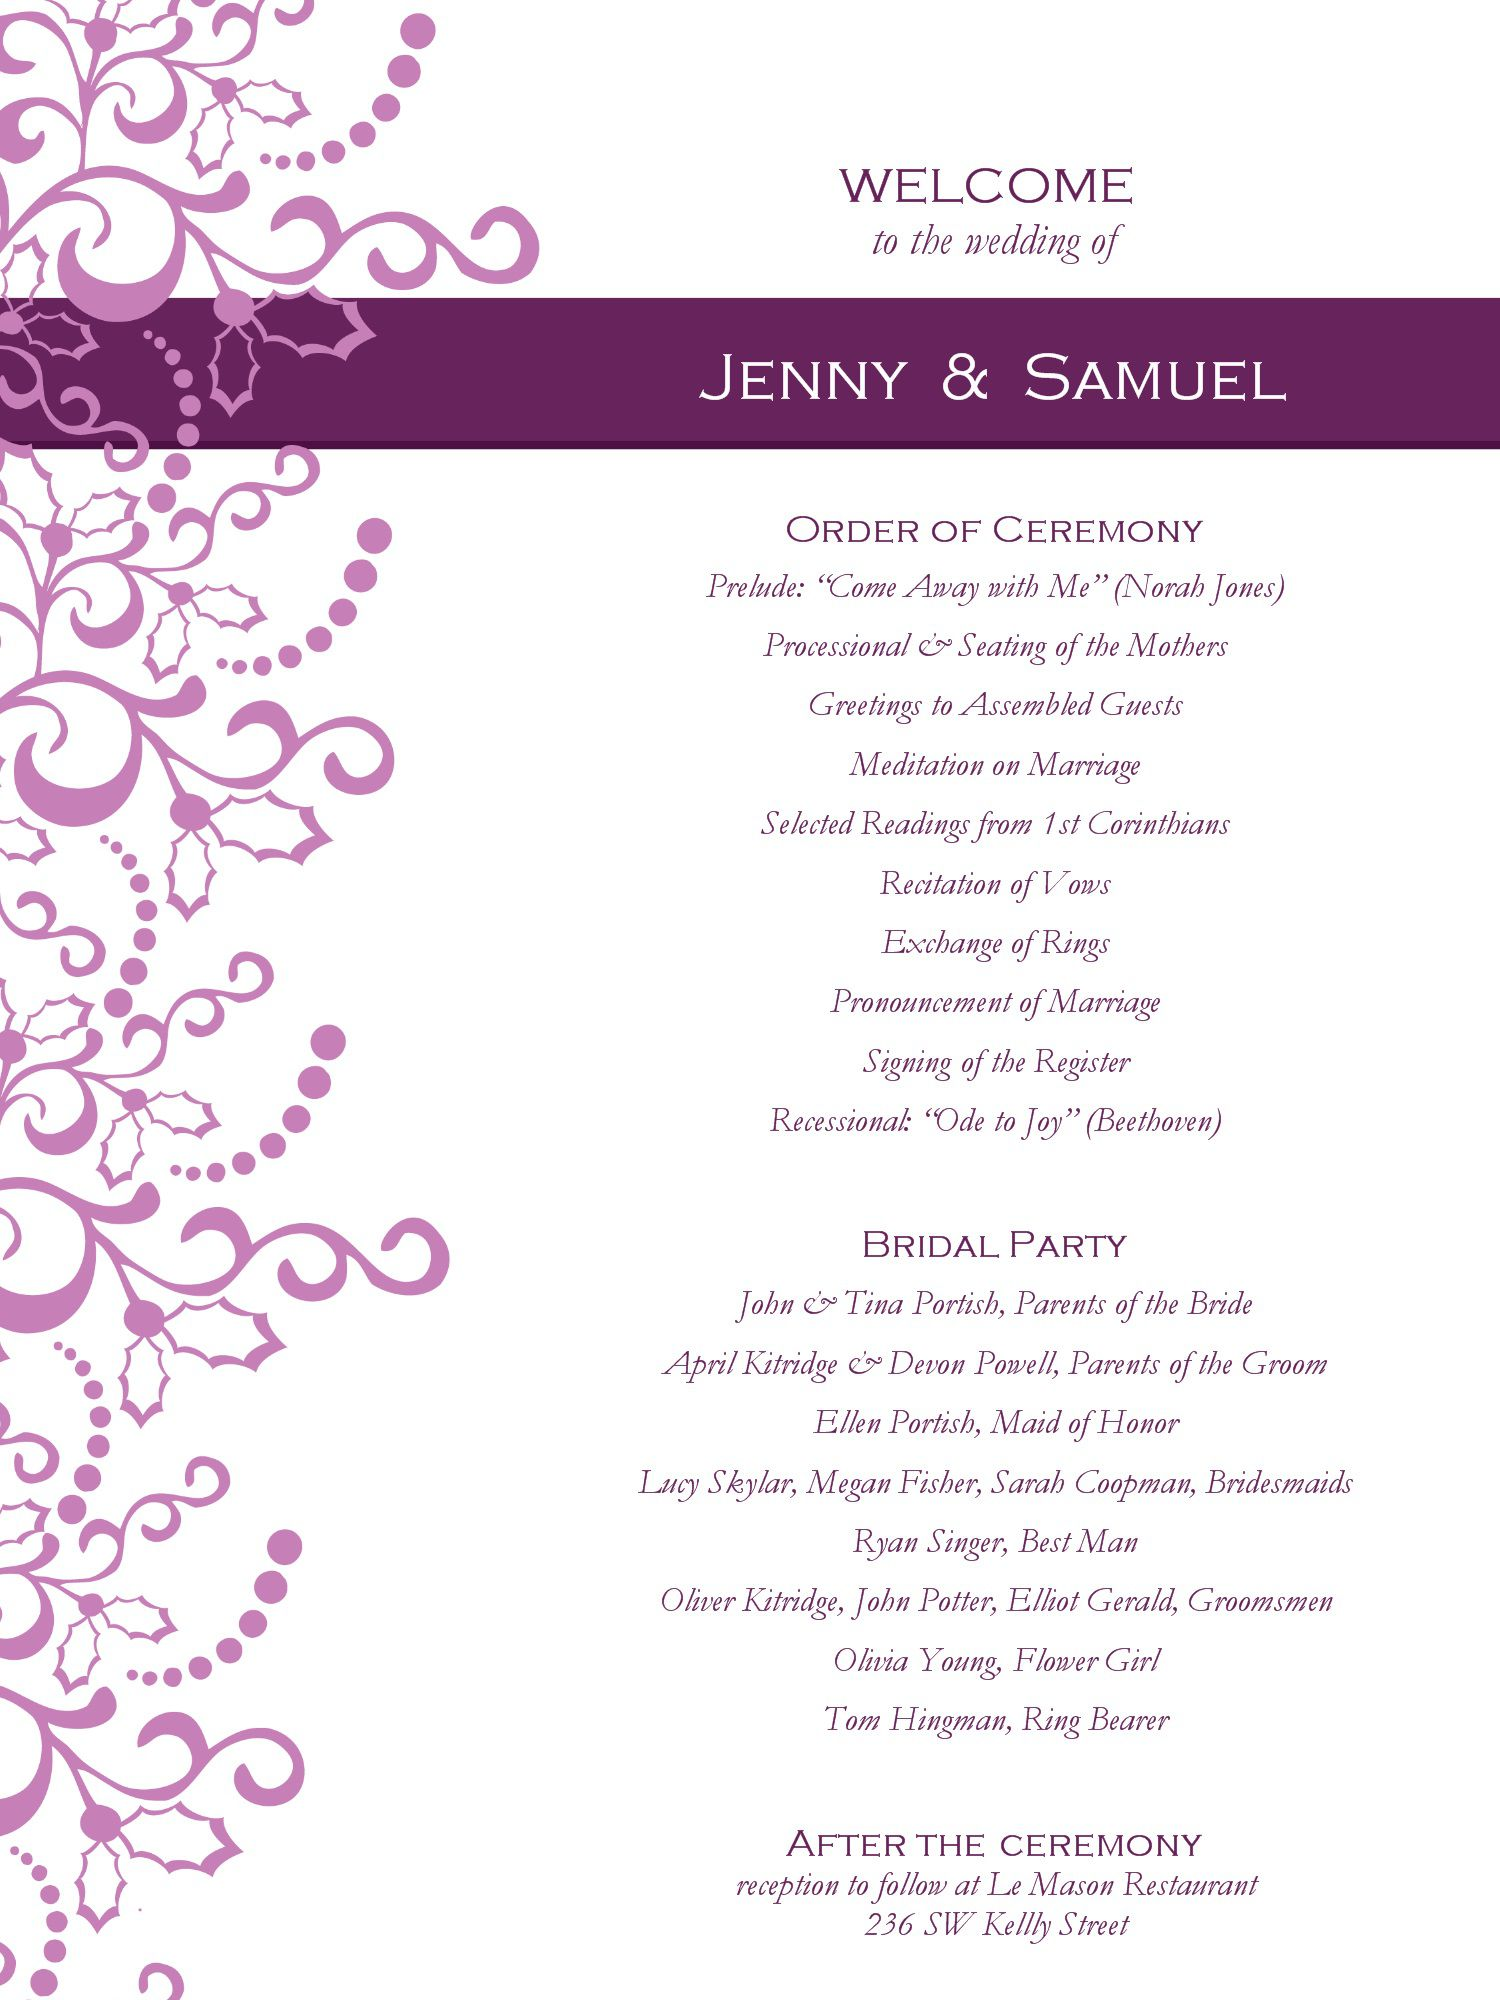 000 Rare Wedding Reception Programme Template High Def  Program Microsoft Word Free Downloadable PdfFull